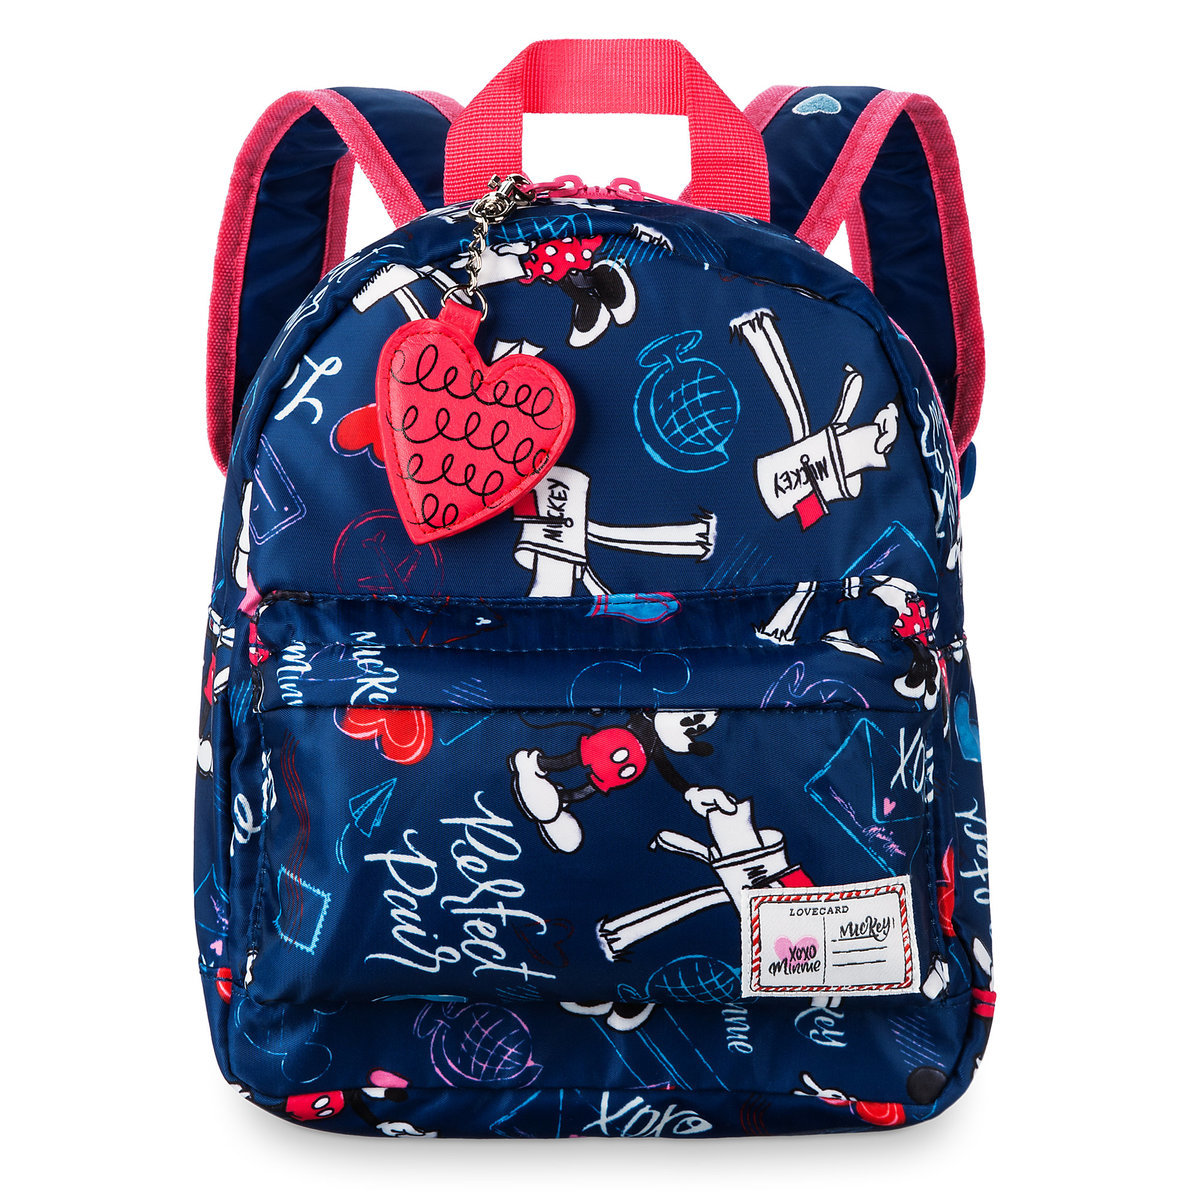 81ba2f2362 Product Image of Mickey and Minnie Mouse Sweethearts Backpack - Small # 1